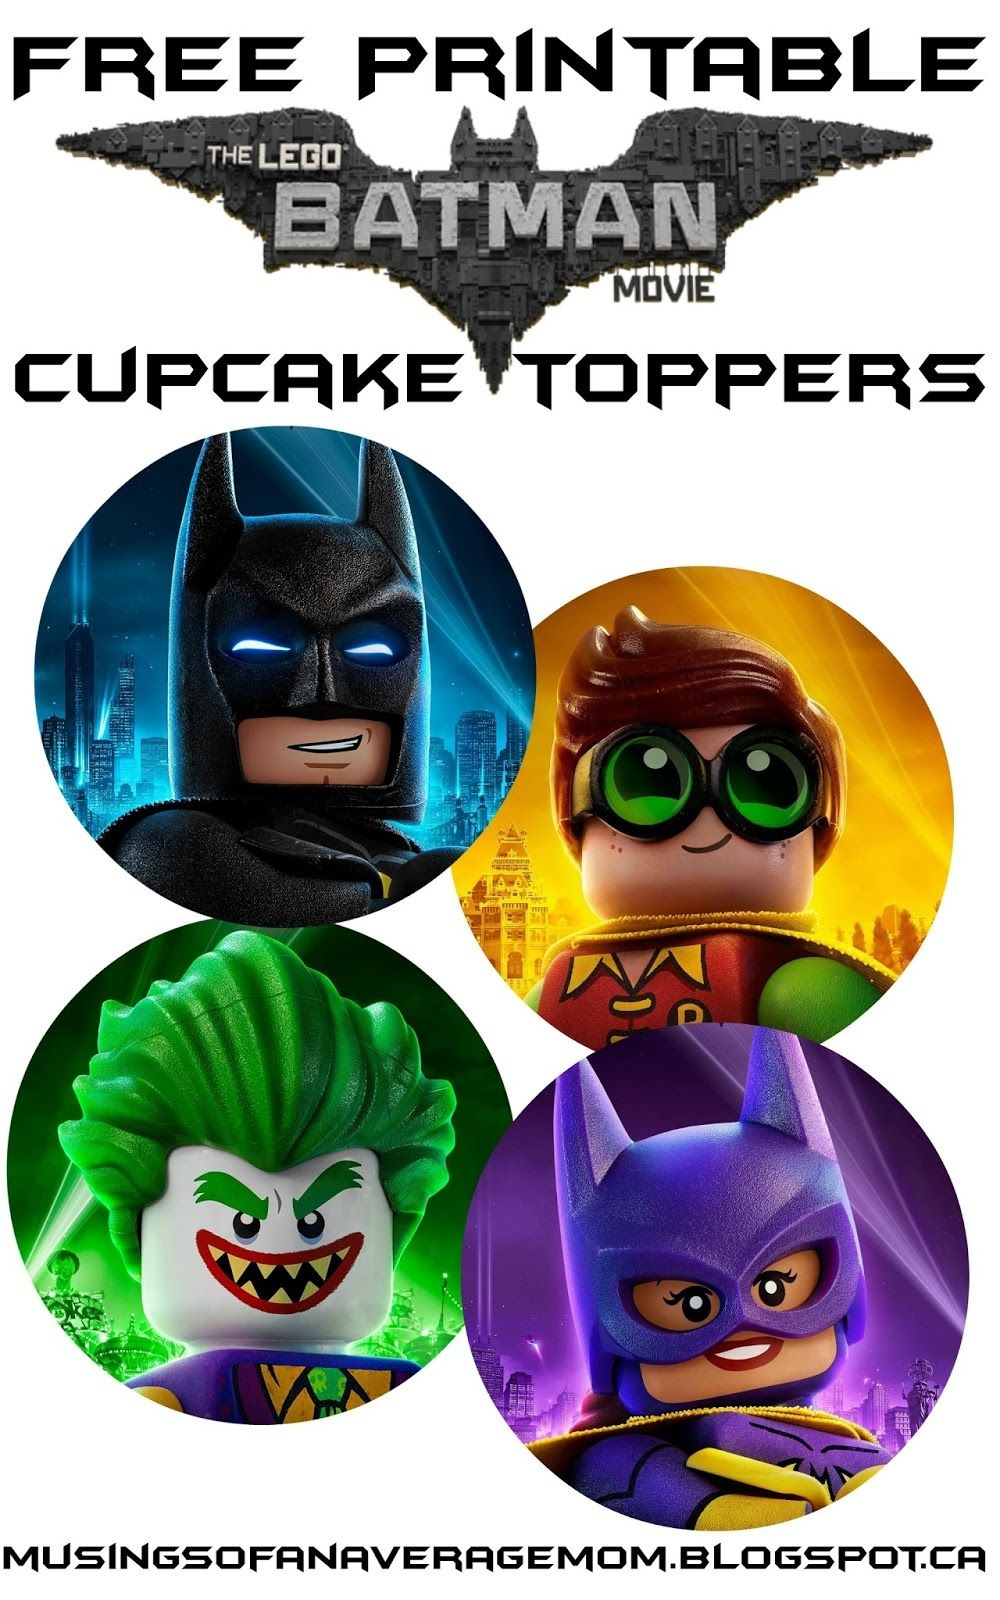 Free Lego Batman Cupcake Toppers | Daniel Bday Theme Ideas | Lego - Batman Cupcake Toppers Free Printable